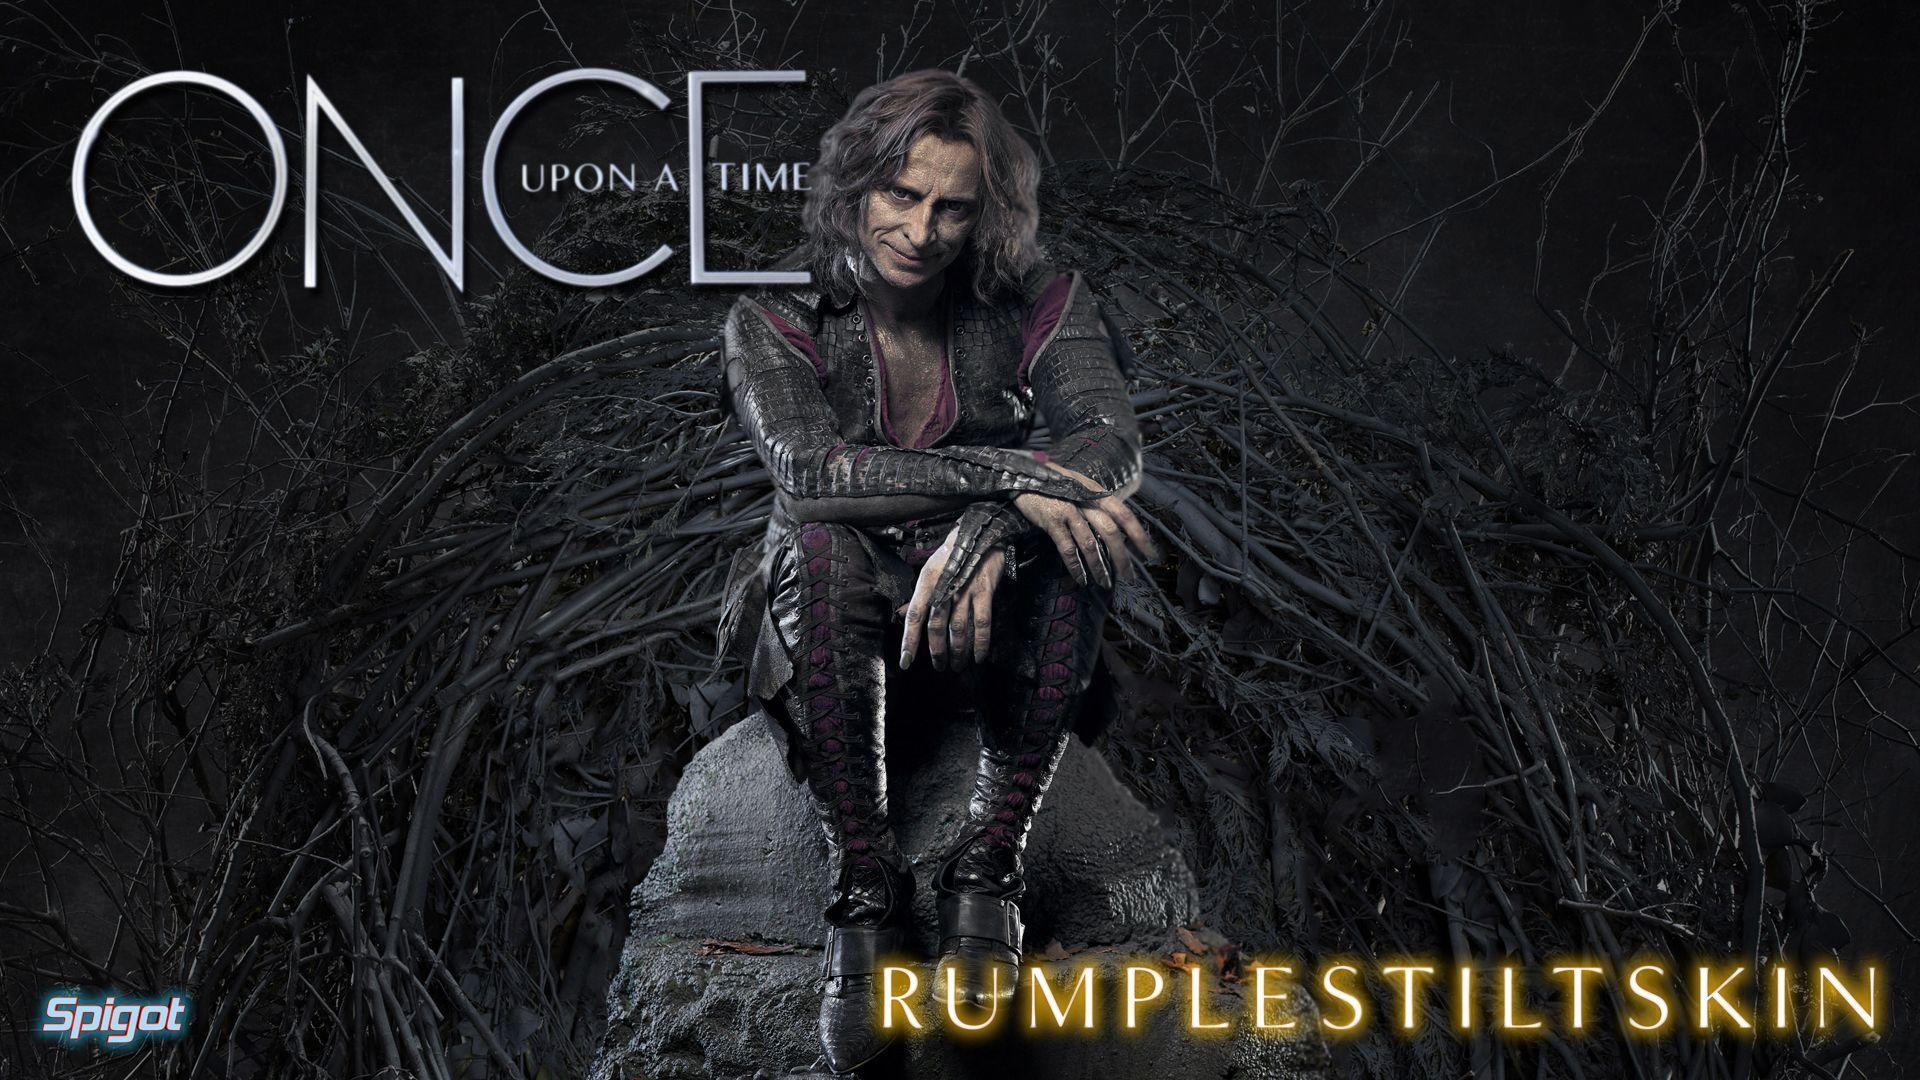 Once Upon a Time Wallpapers High Resolution and Quality Download